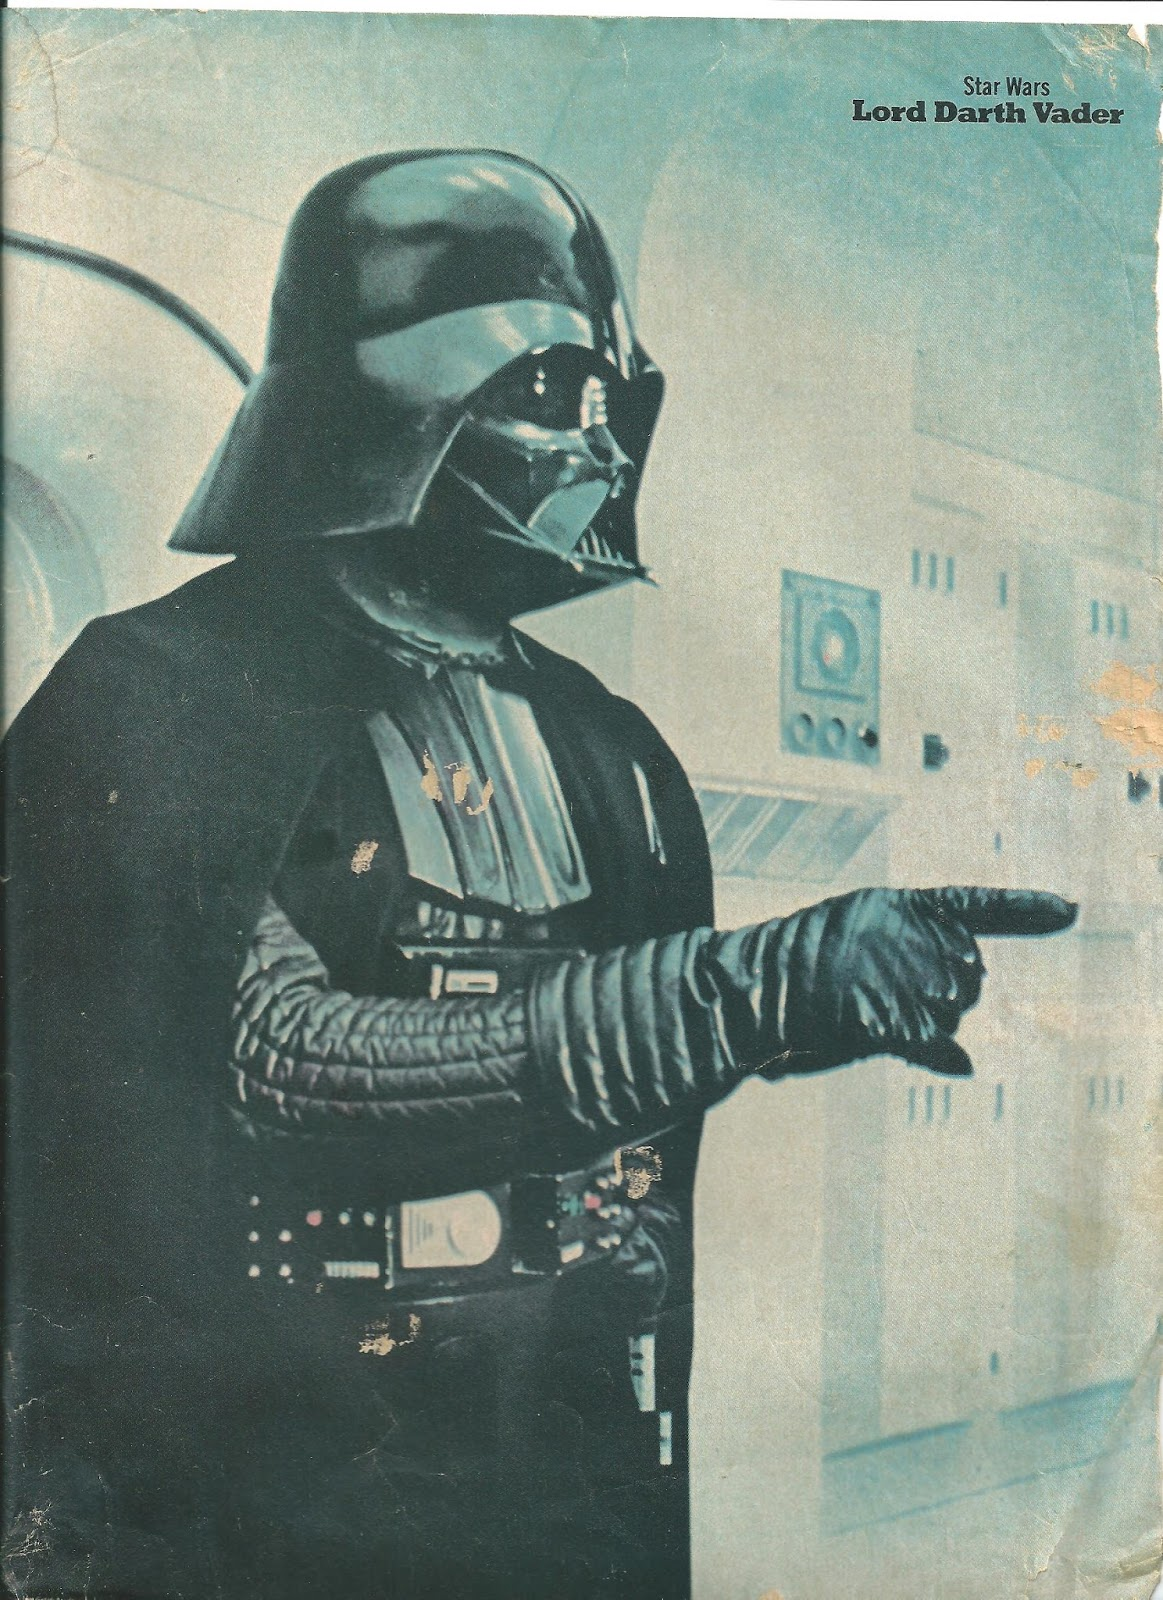 Episode Nothing Star Wars In The 1970s Those Star Wars